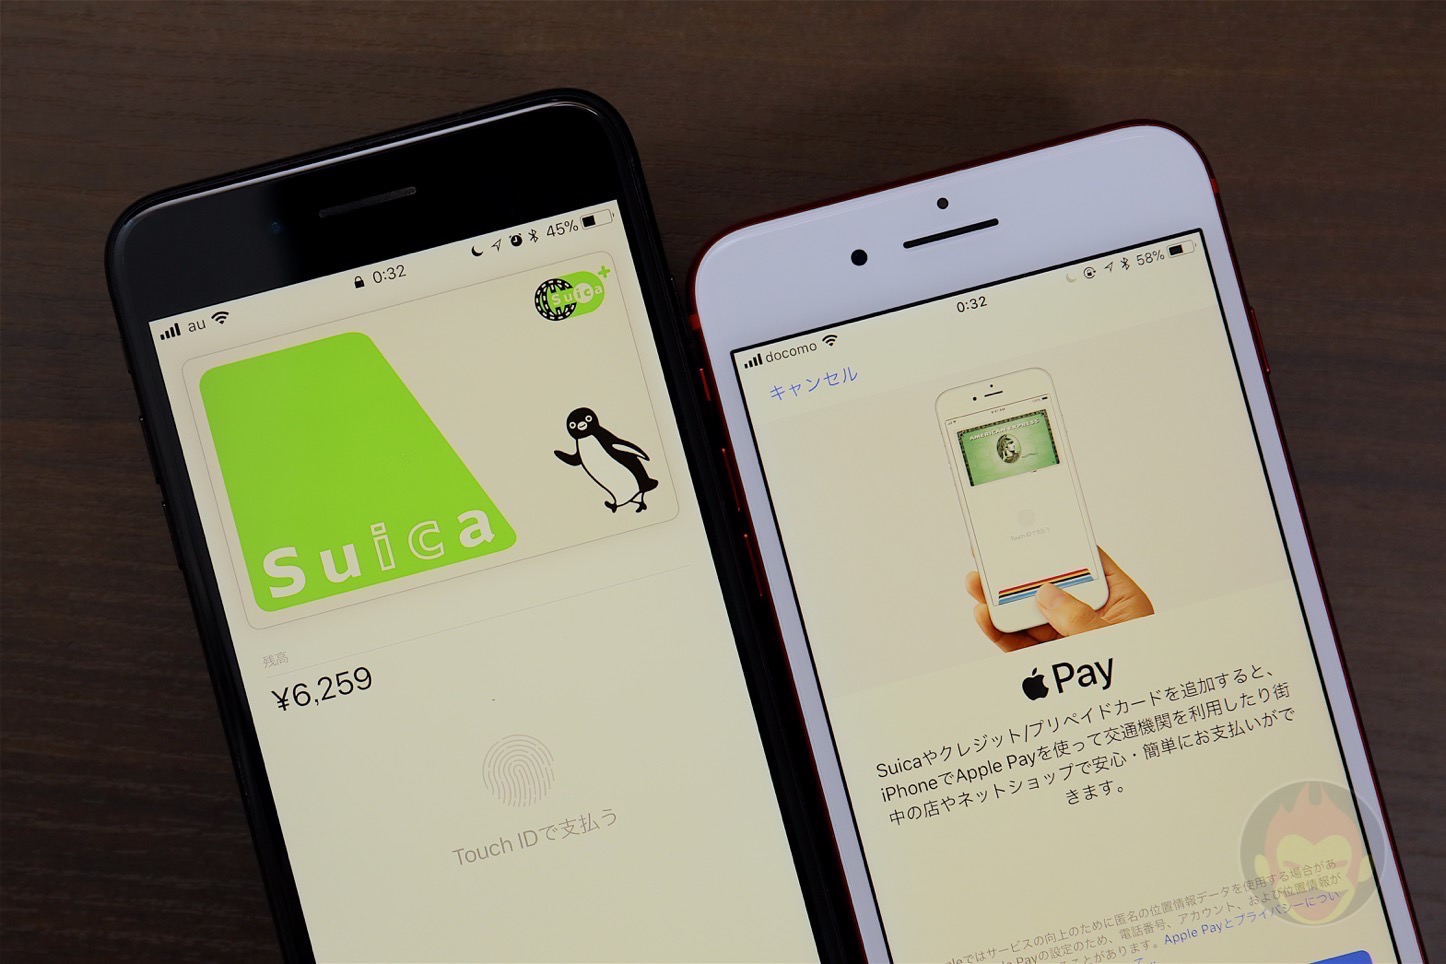 Moving-Suica-from-Old-to-New-iPhone-01